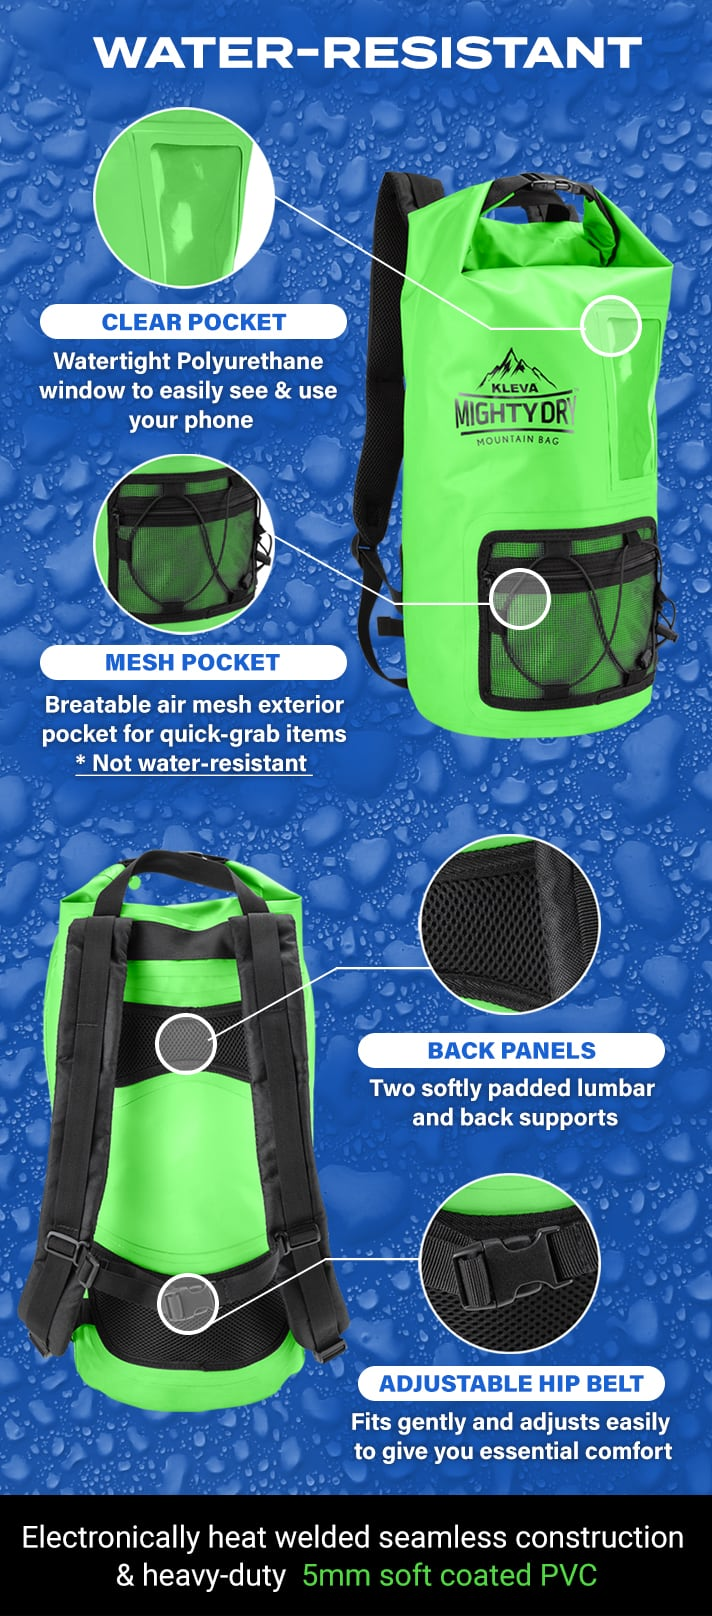 water resistant kleva dry bag image for mobile version